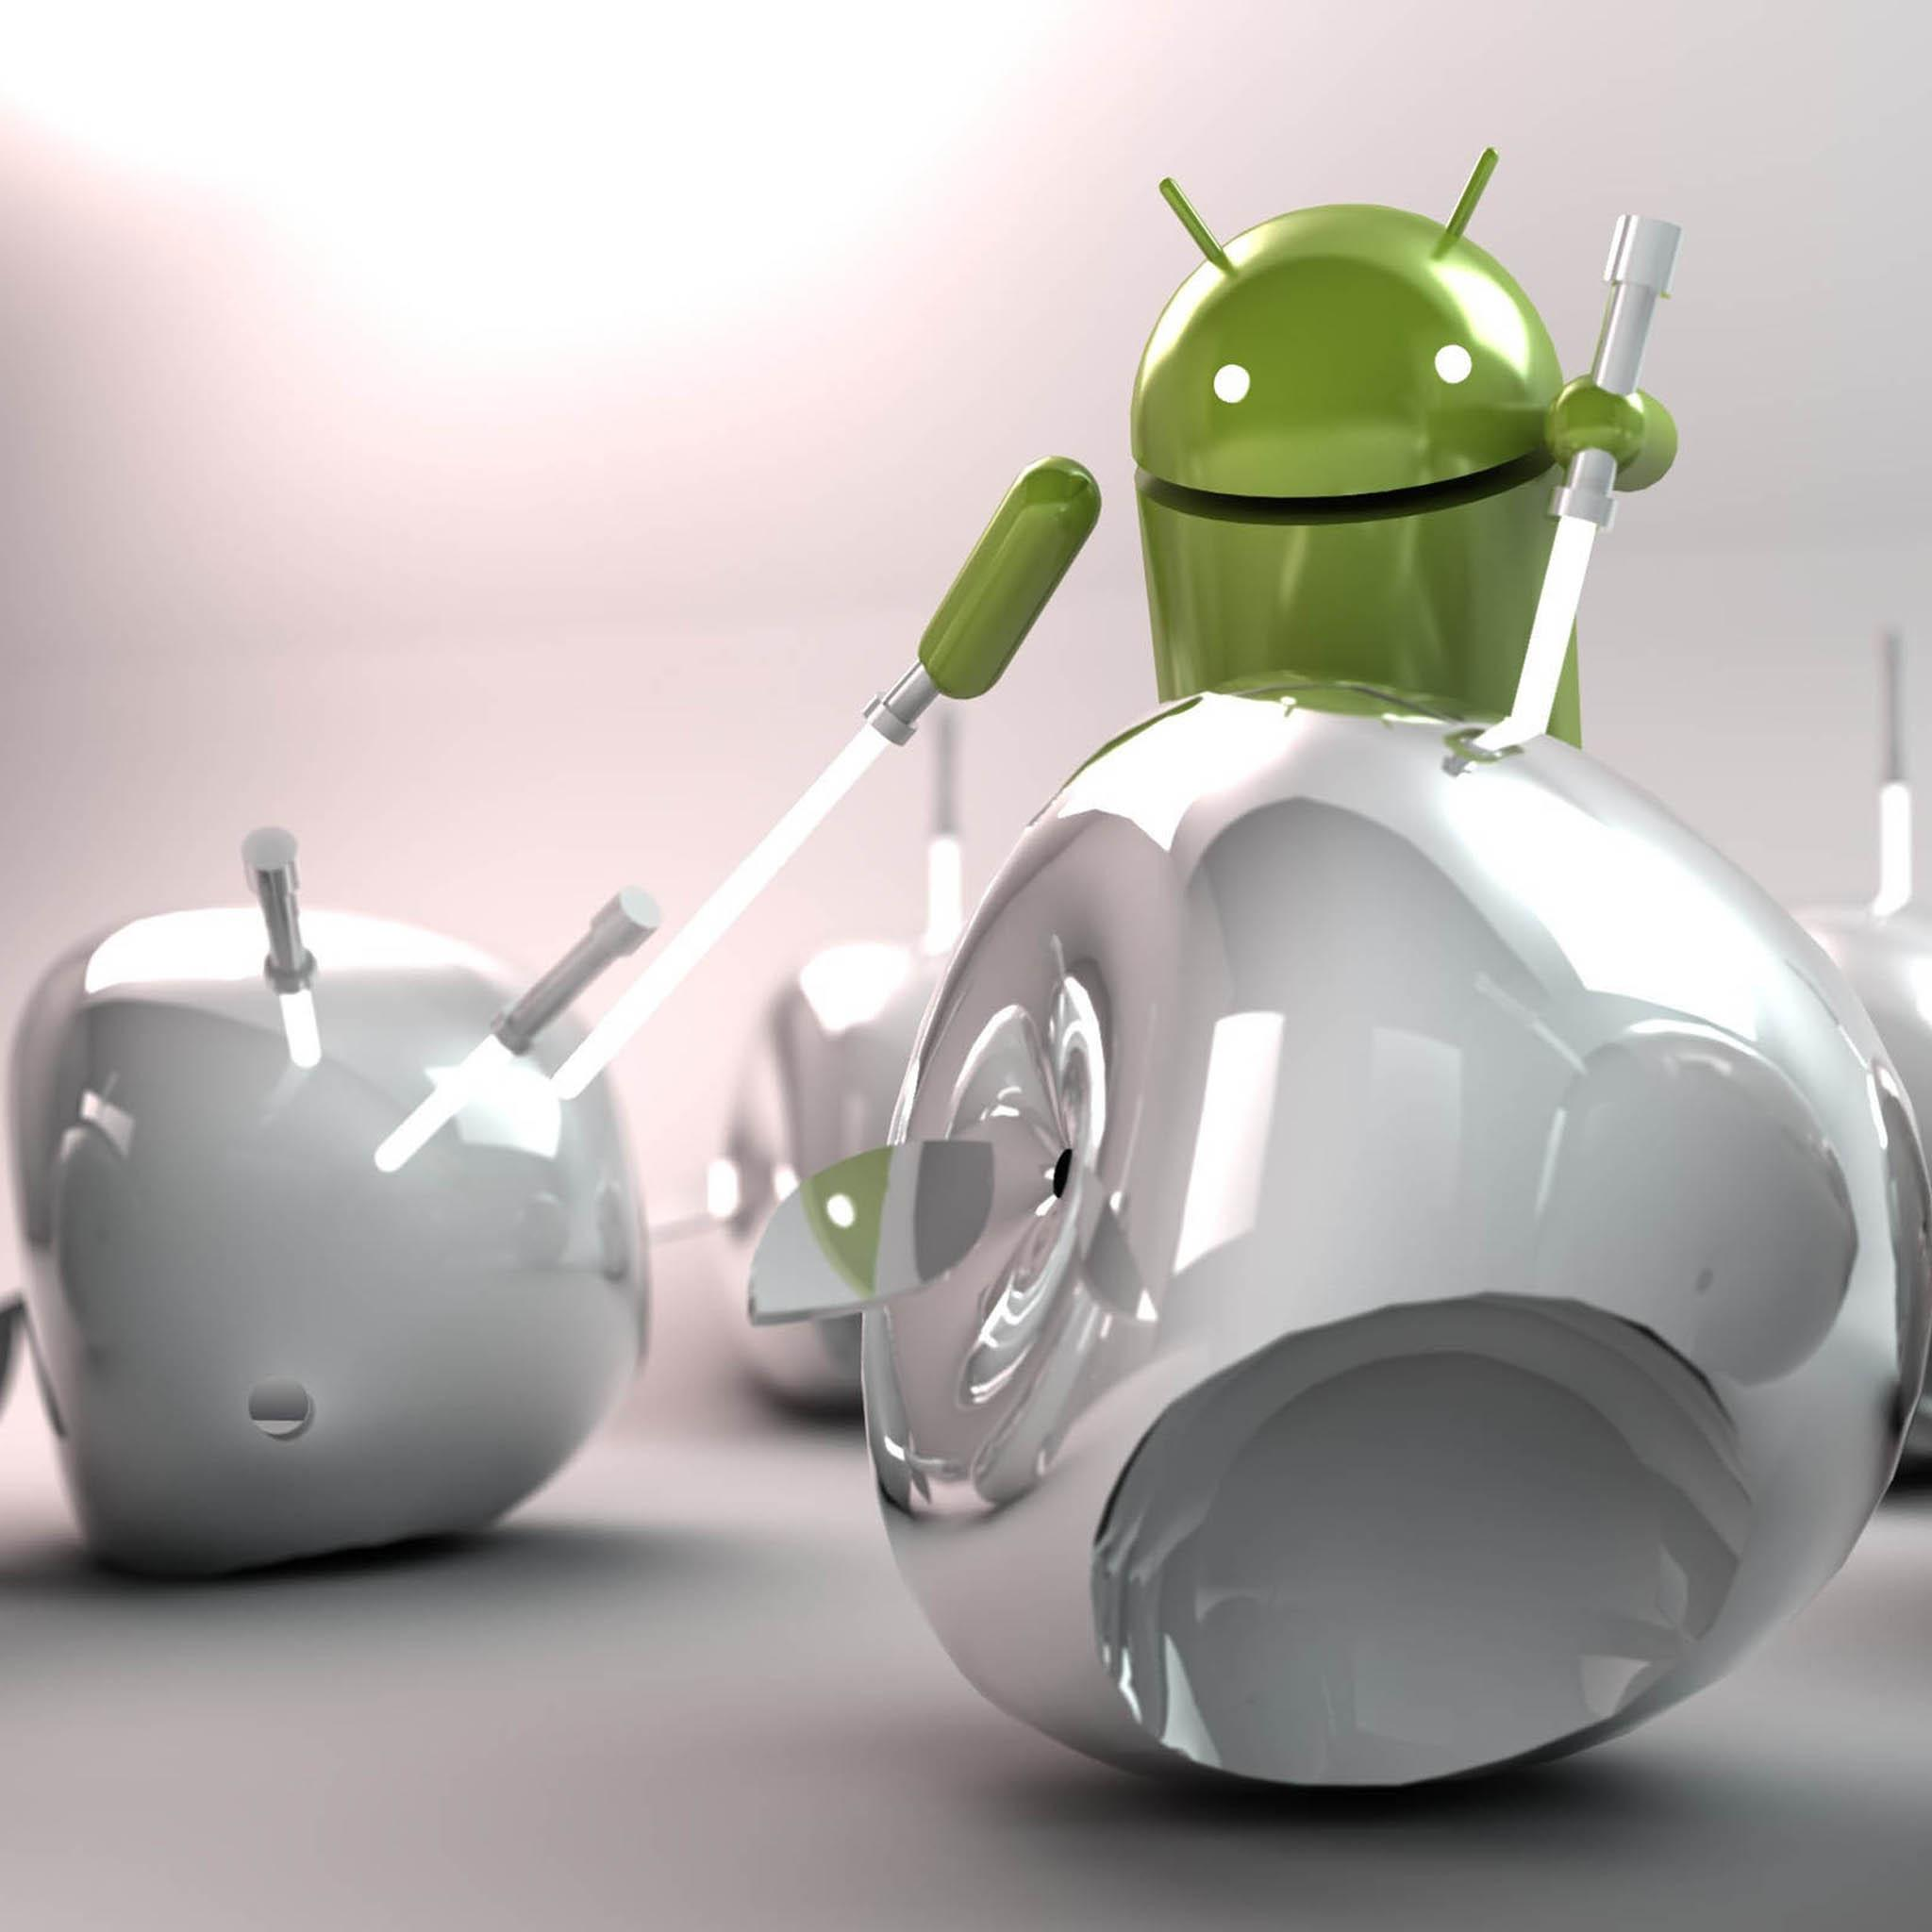 Android-vs-Apple-2048x2048